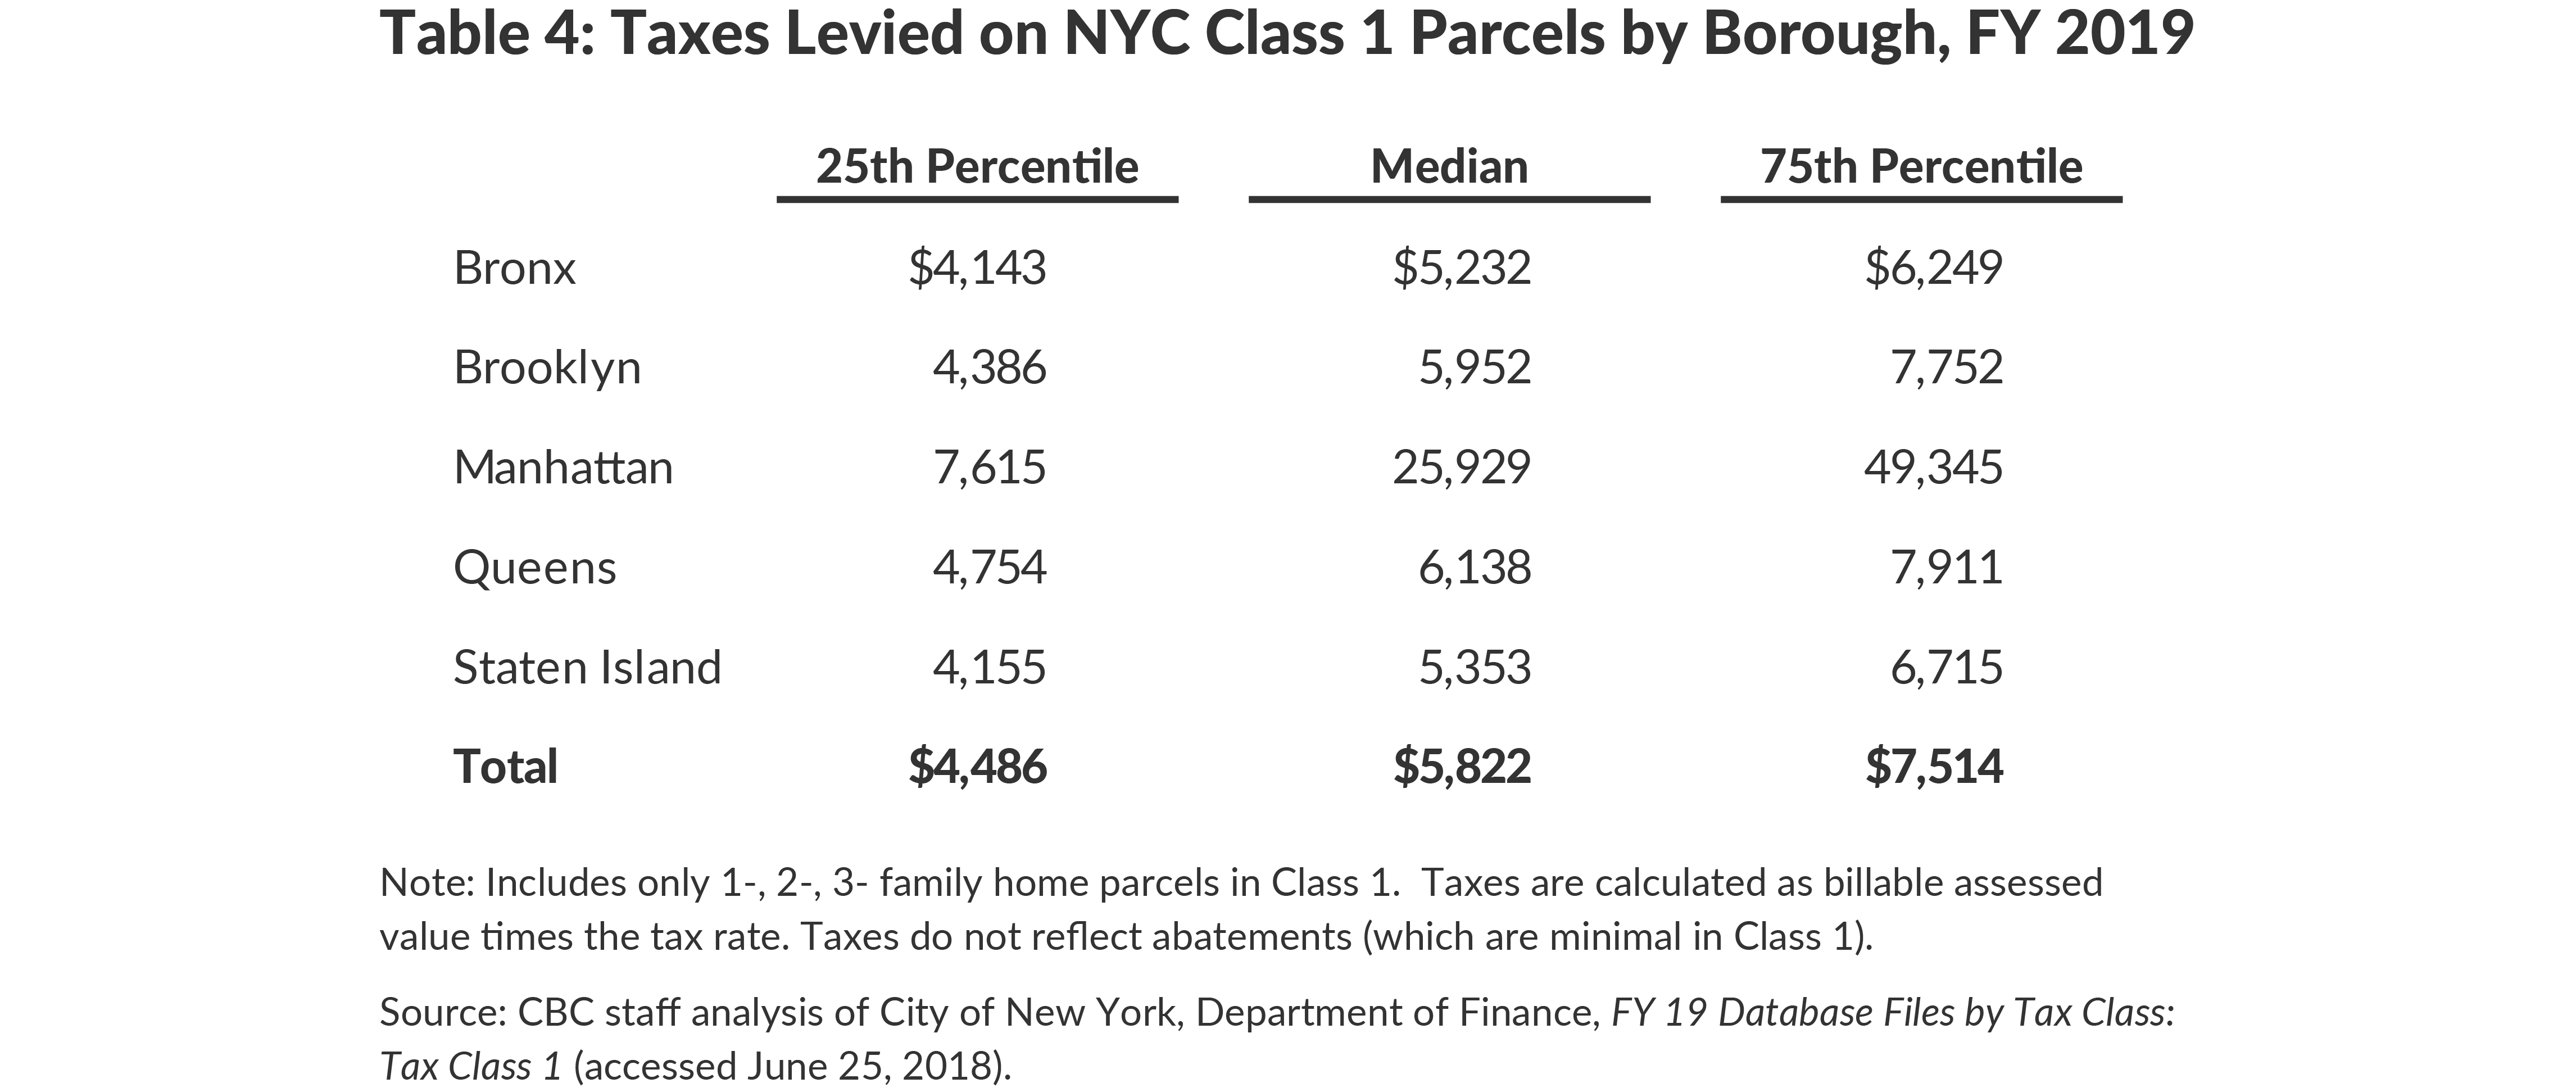 Table 4: Taxes Levied on NYC Class 1 Parcels by Borough, FY 2019